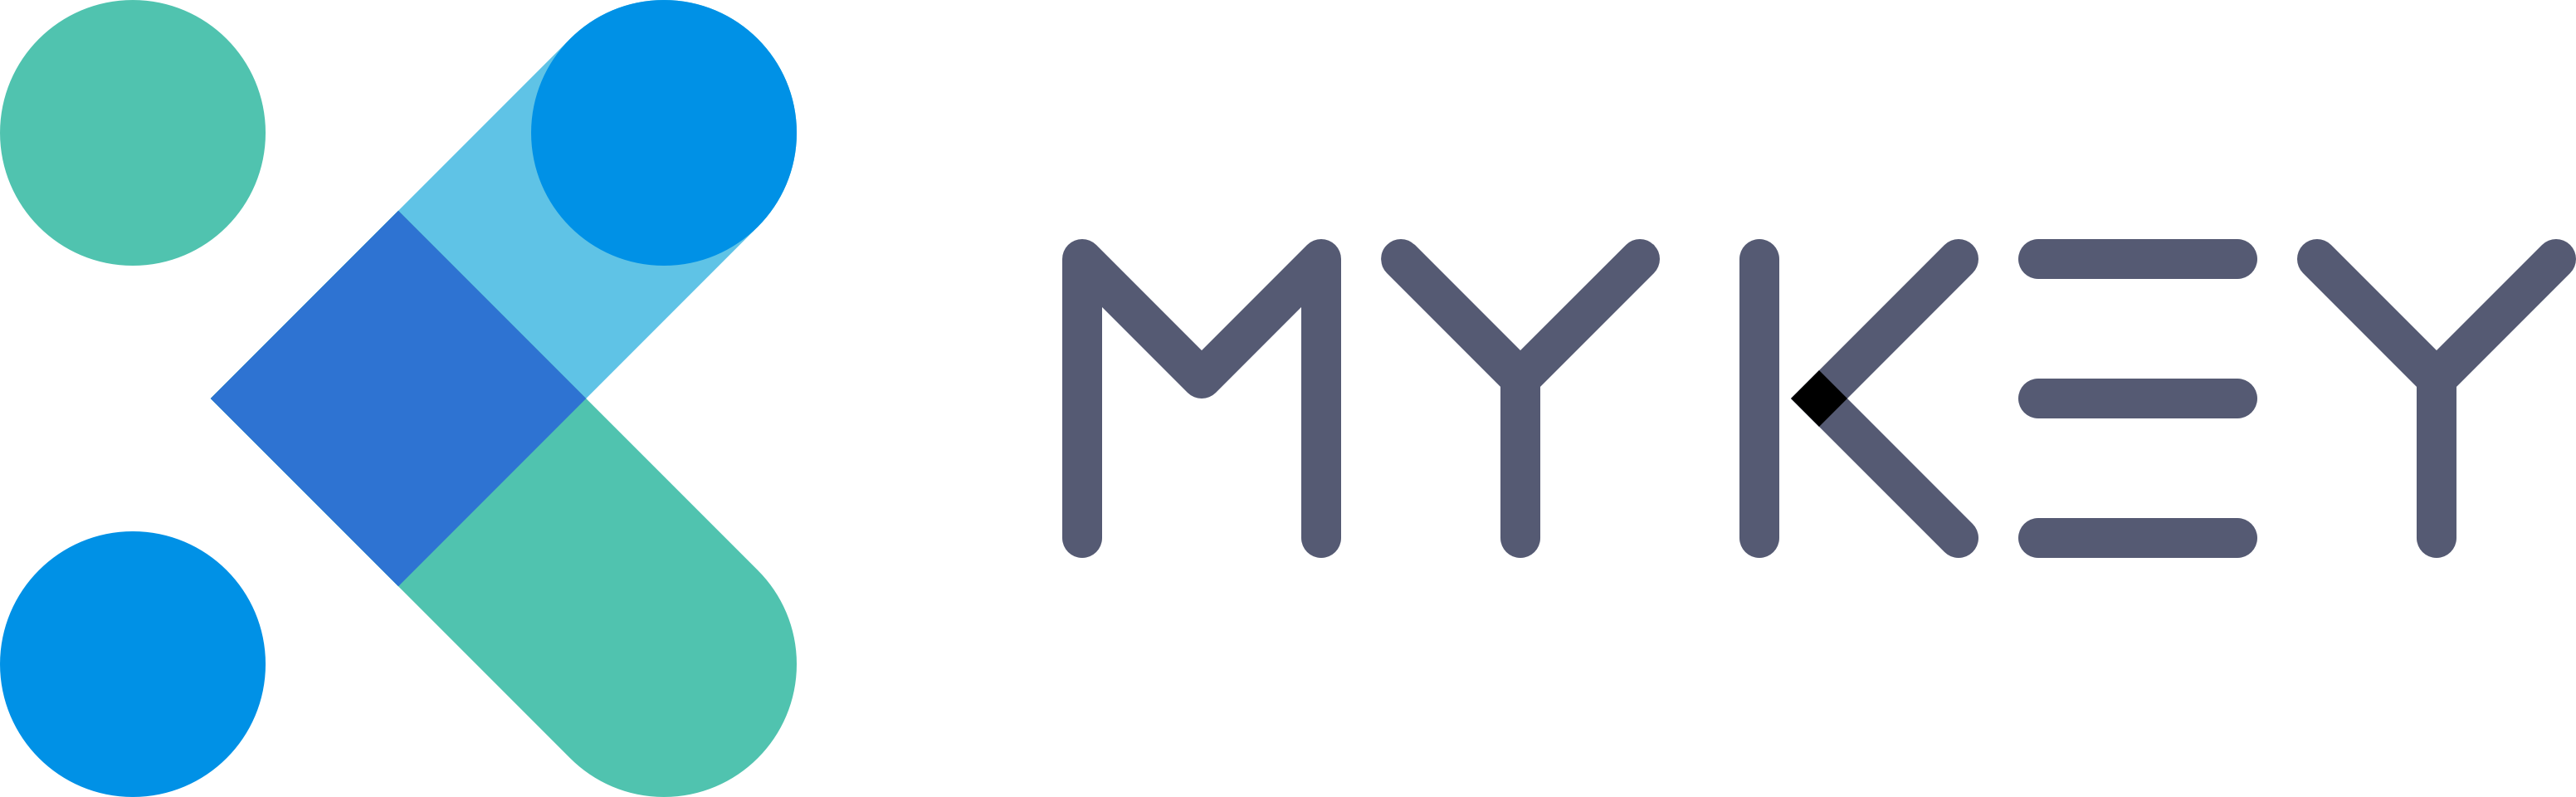 MYKEY Lab Help Center home page